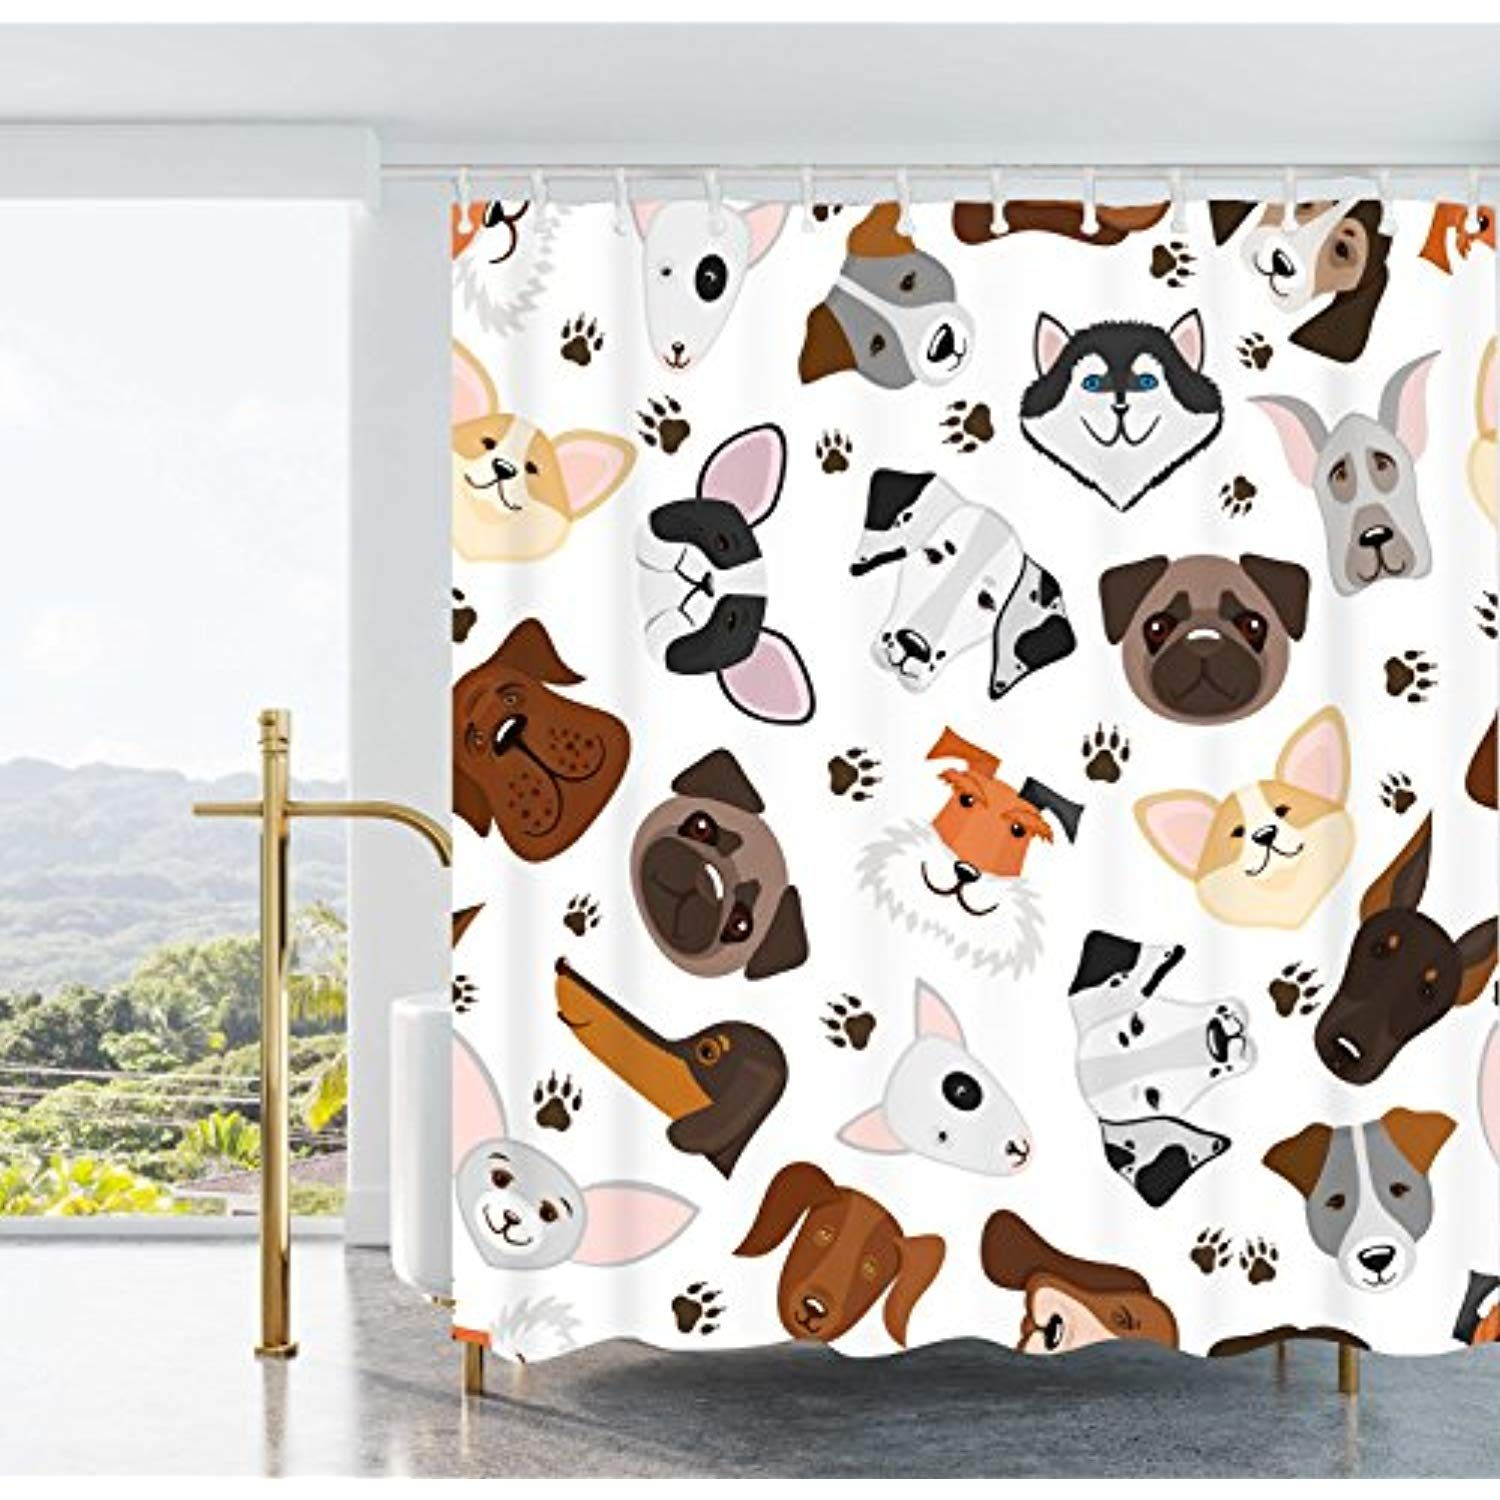 Ao Blare Dog Shower Curtain Cute Puppy And Dog Mixed Breed With